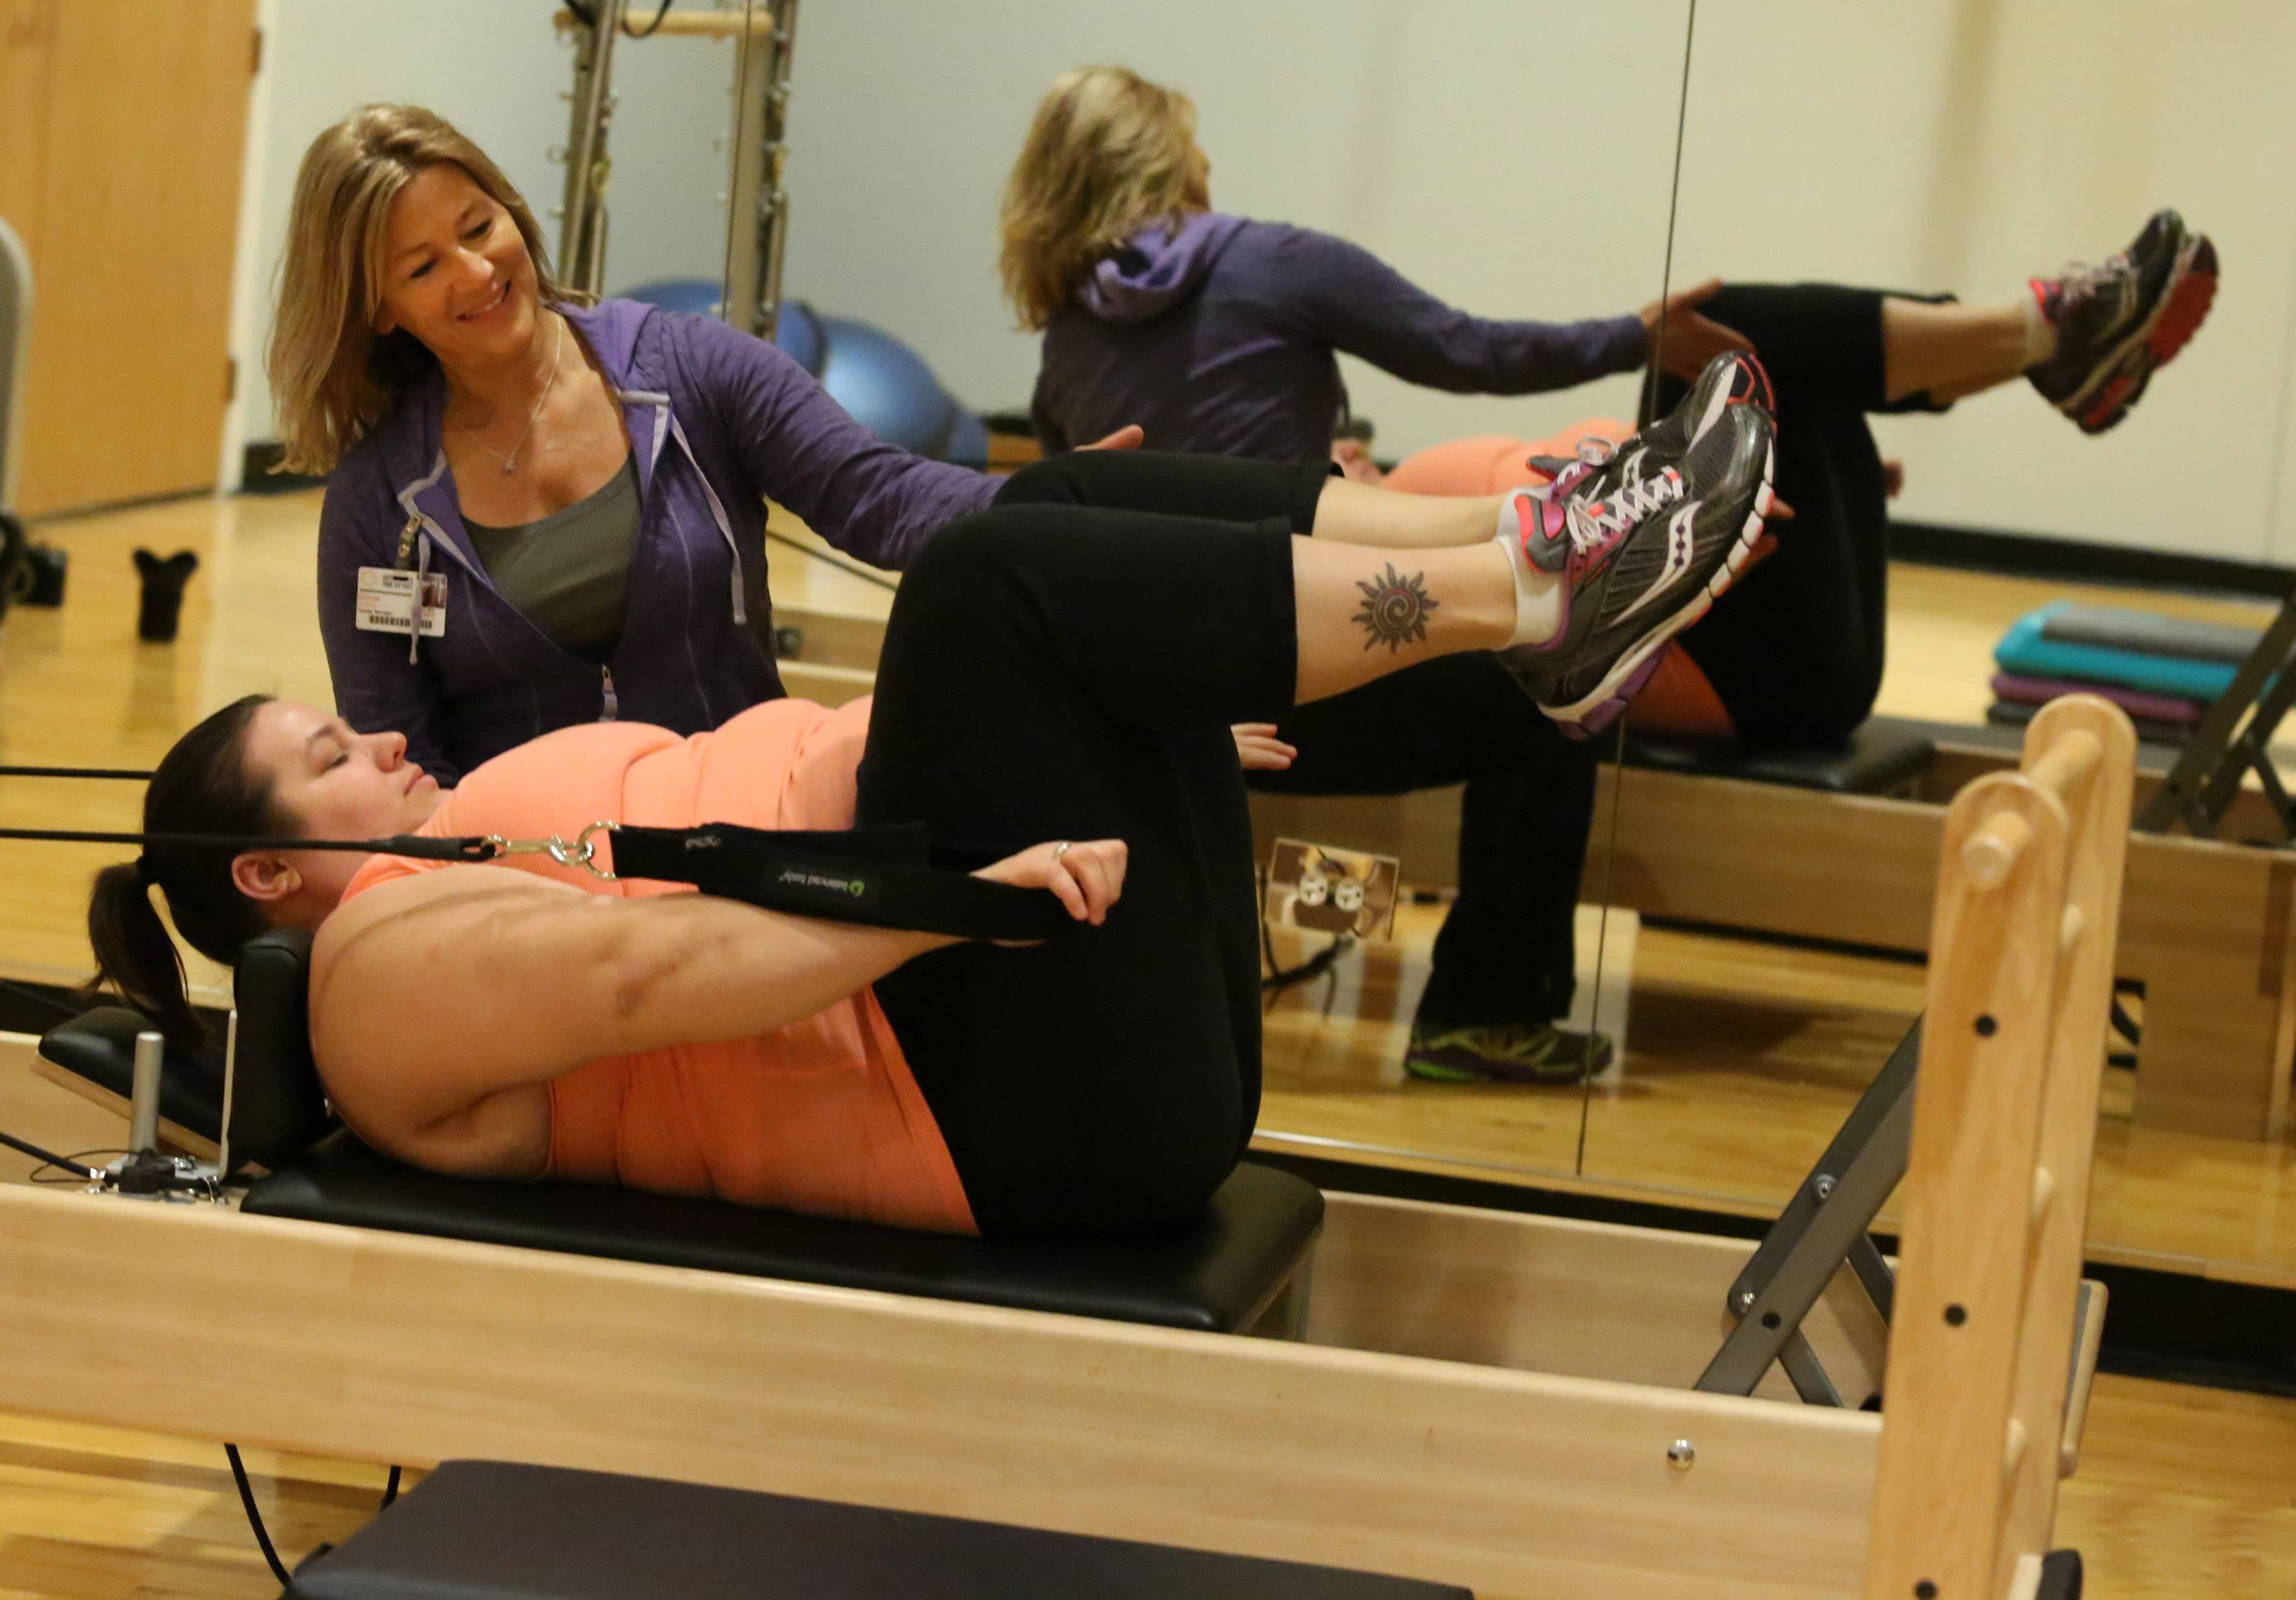 Fittest Loser Allie Monroe works out on the Pilates reformer machine at Prairie Stone Fitness Center in Hoffman Estates where her mom, Glenna Gineris, is a fitness manager.